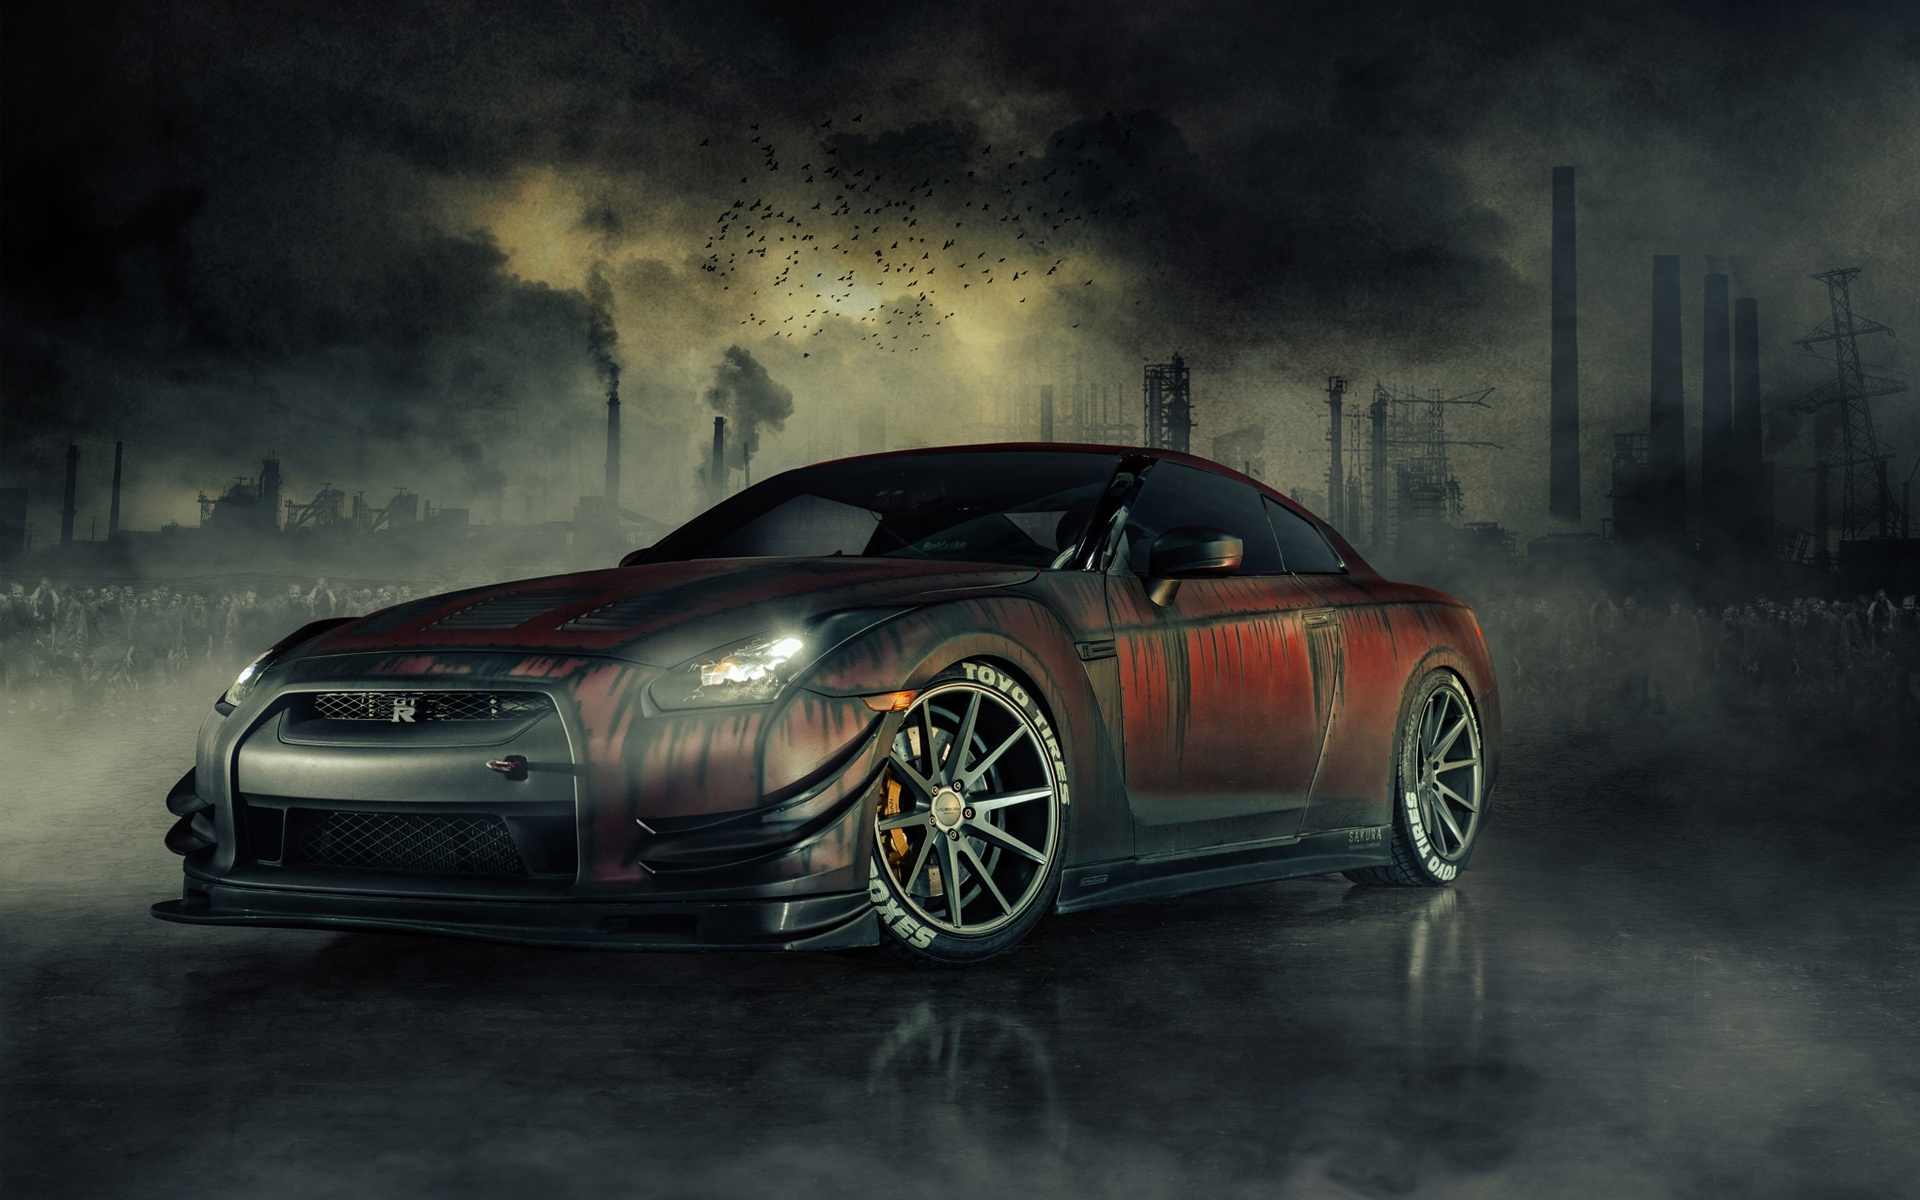 Nissan Gtr R35 Zombie Killer Wallpapers In Jpg Format For